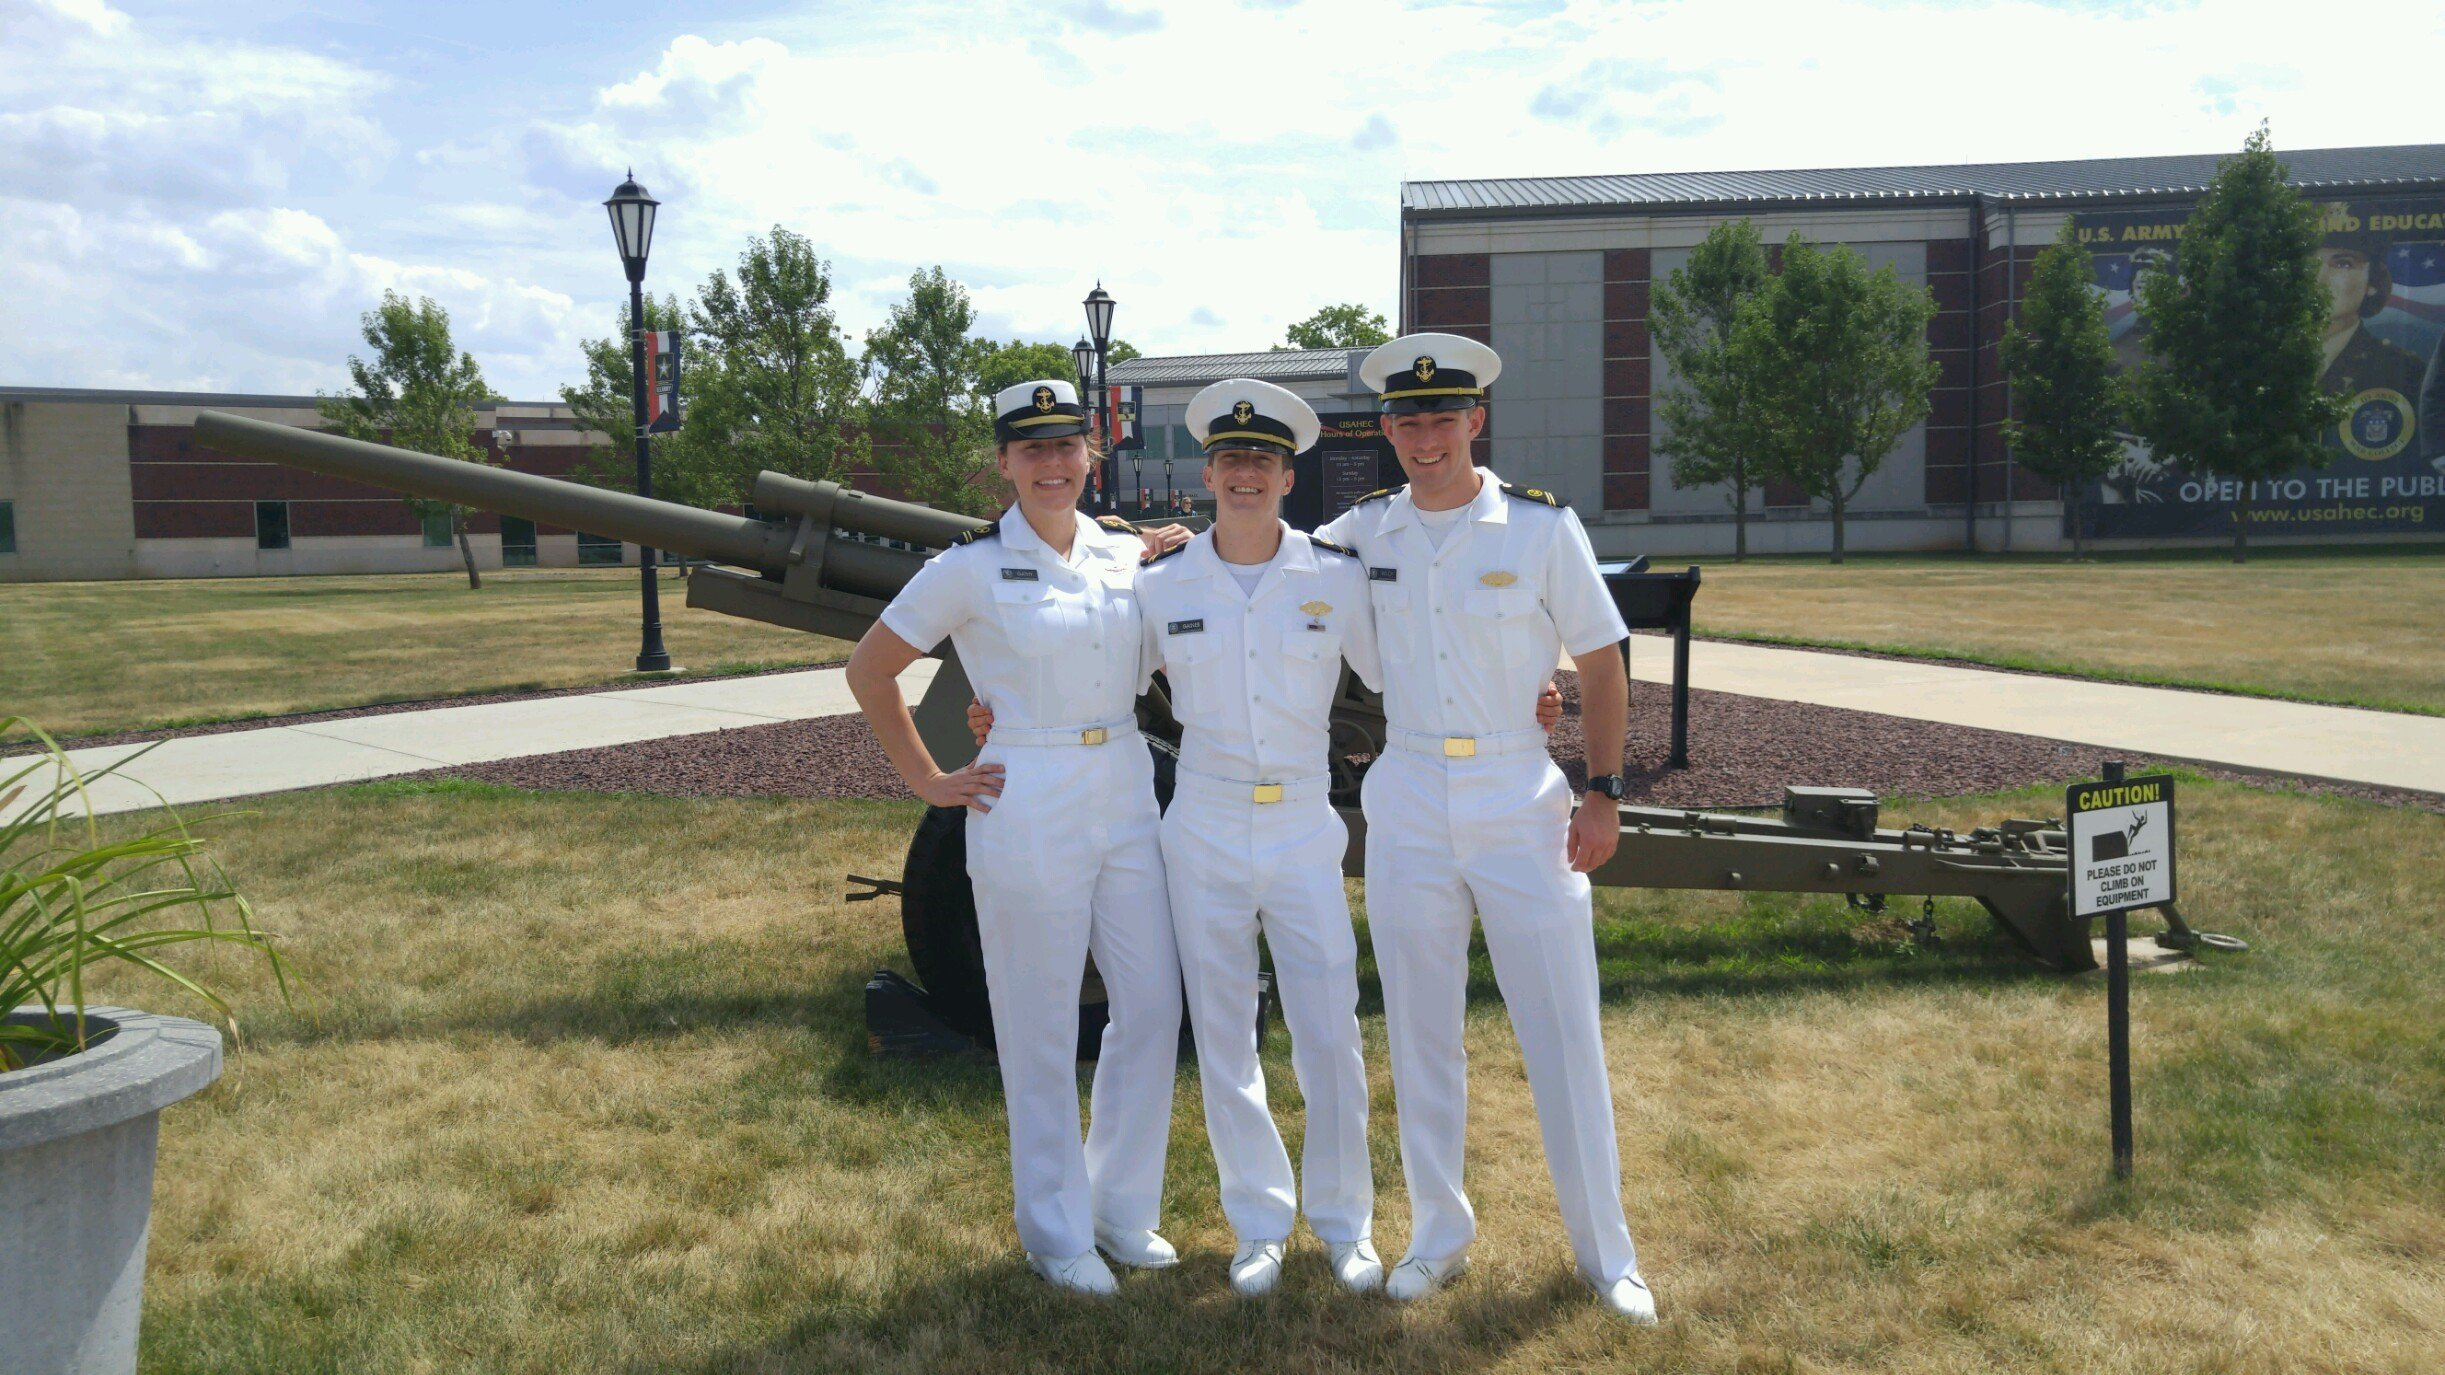 (LtoR) Midshipmen Gathy, Gaines and Welch at the U.S. Army Heritage Foundation, Carlisle, PA.